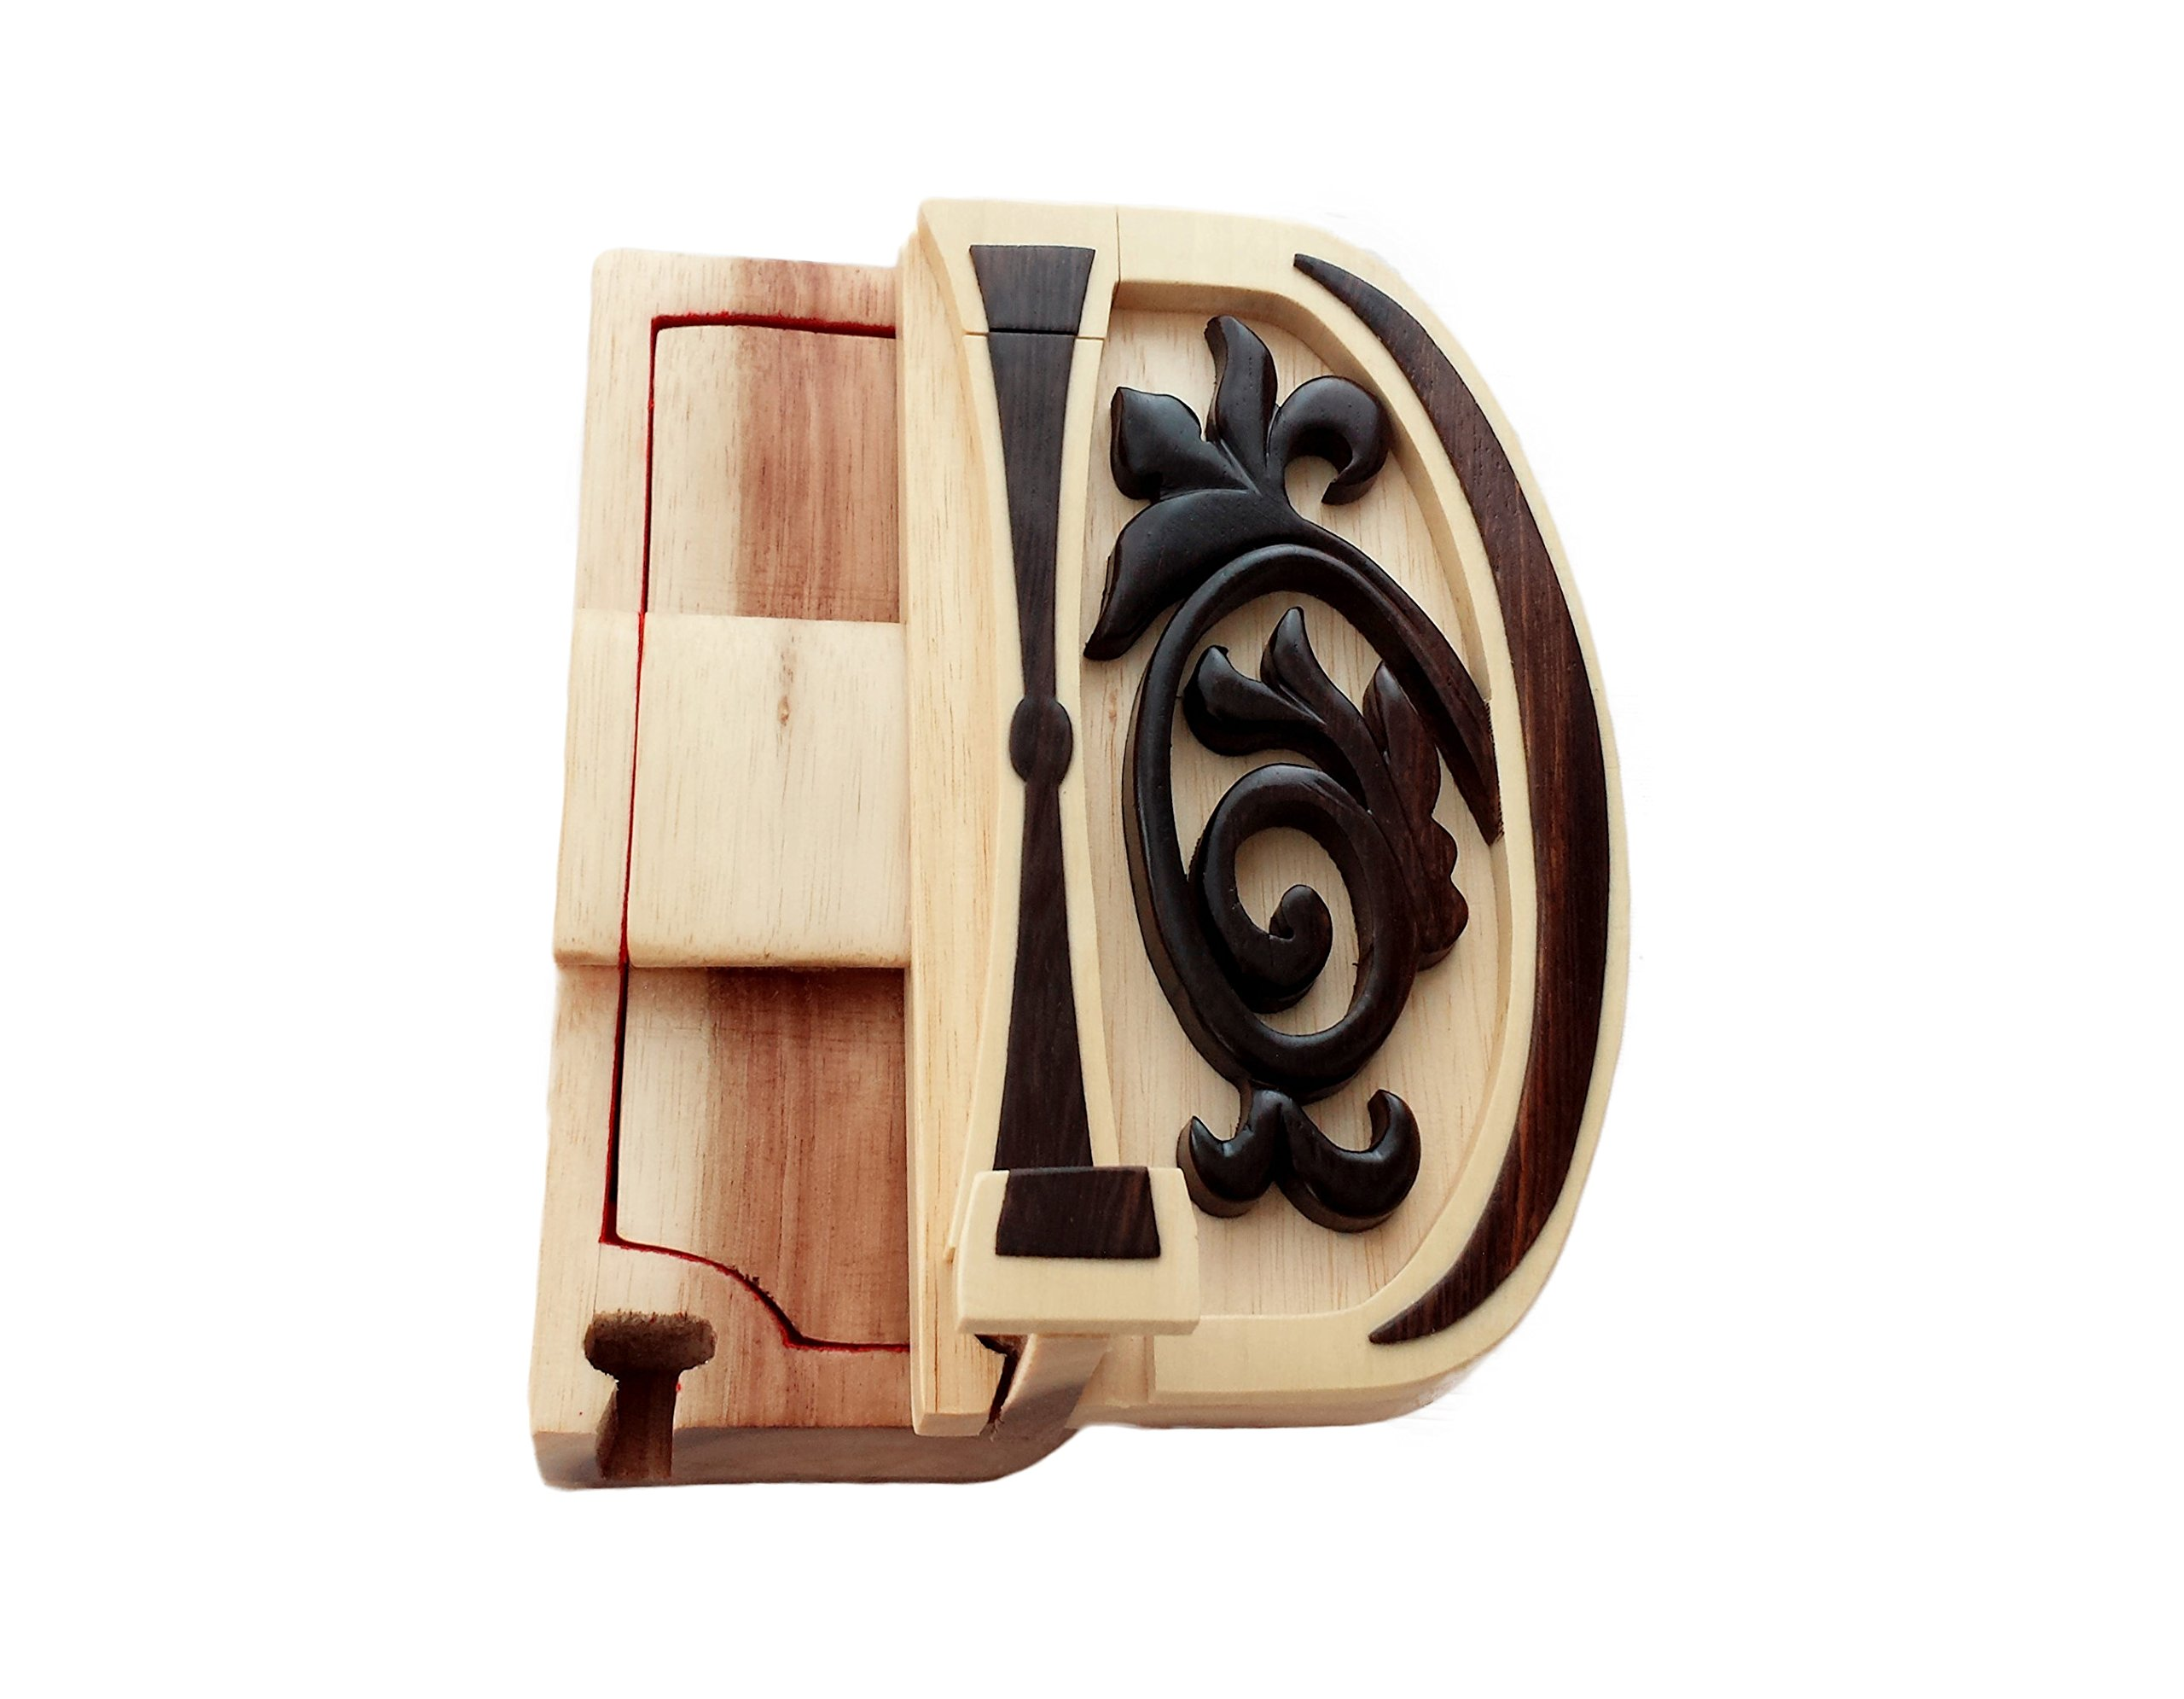 Letter D Initial hand-carved puzzle box with No Paints! No Stains! Hidden felt lined interior that hides jewelry, gift cards, or money. No two will ever be identical! Pet Carvers